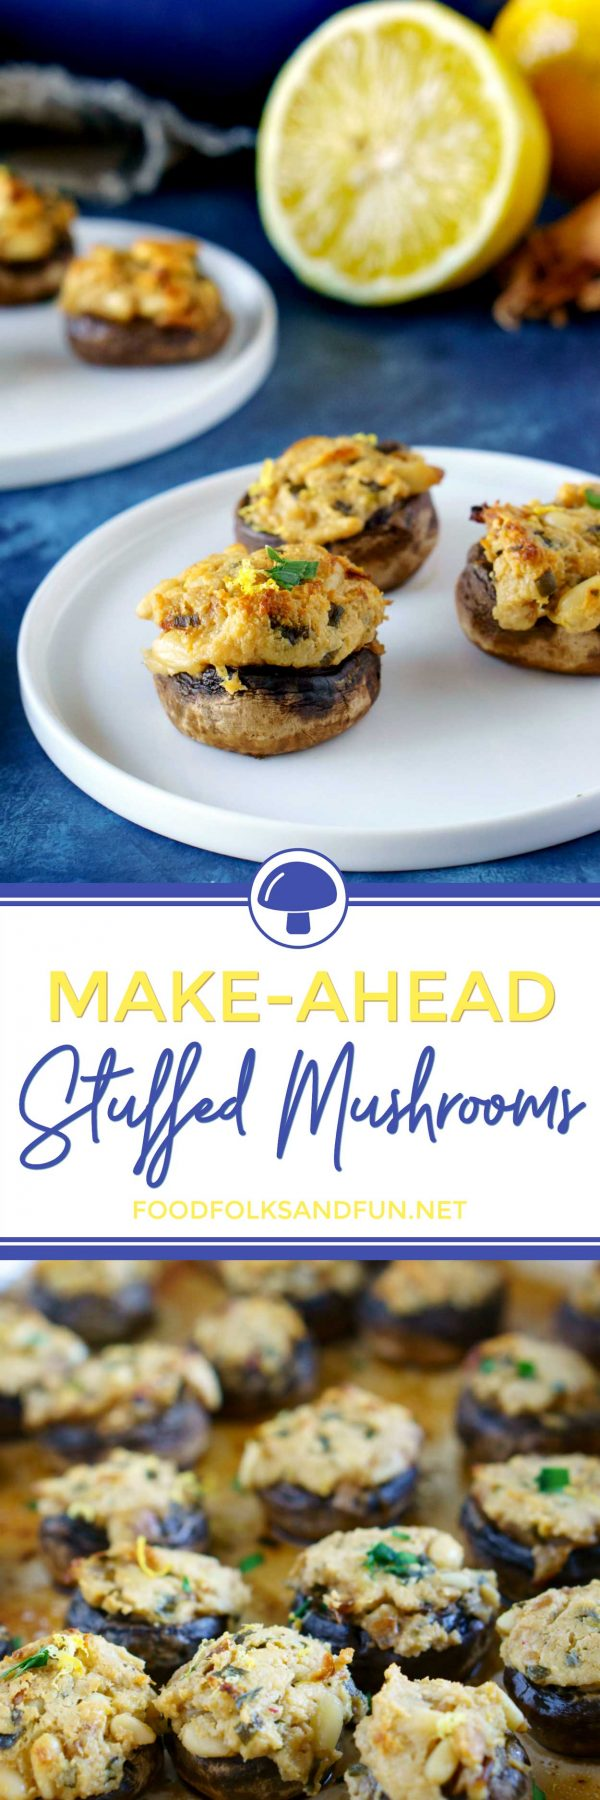 Picture collage of stuffed mushrooms.